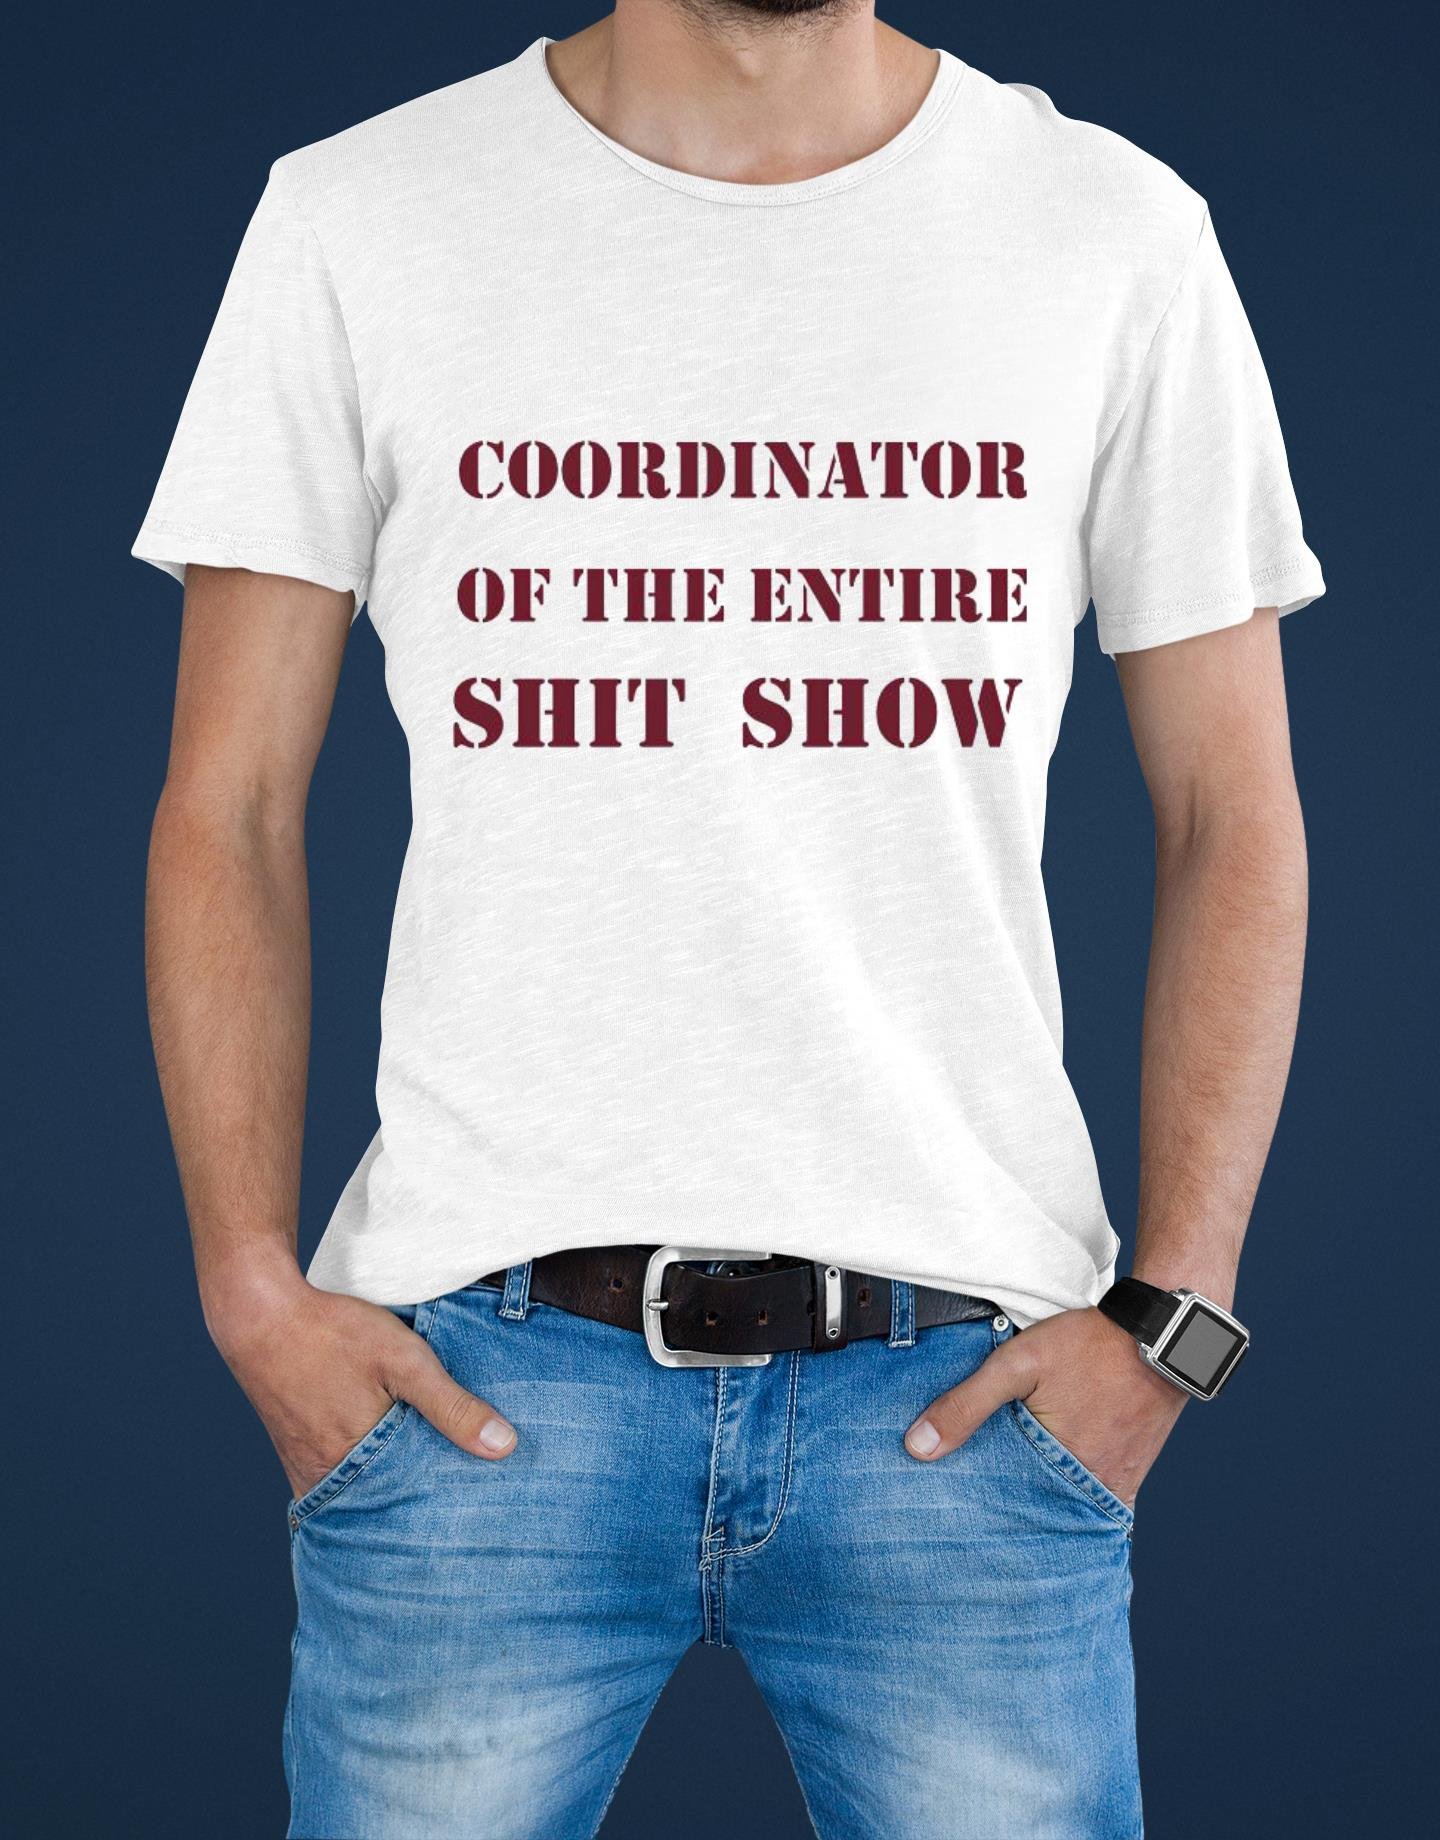 Best Coordinator of the entire shit show shirt